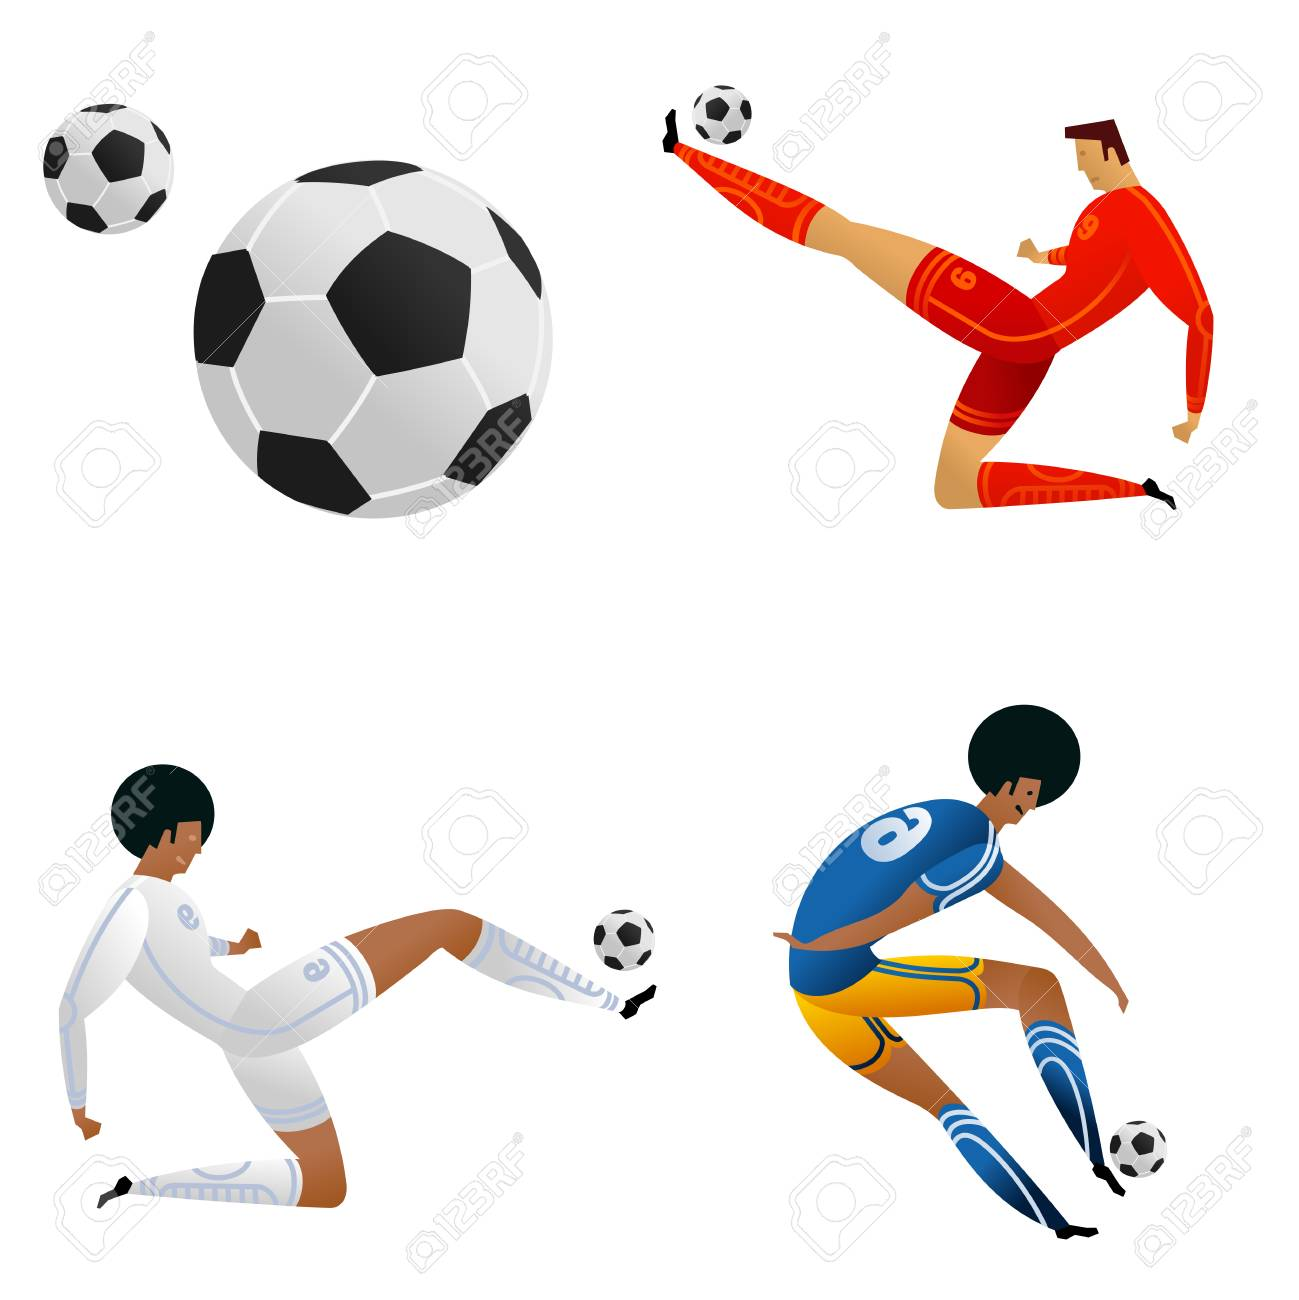 Soccer player on gray official background. Football player in Russia. Full color vector illustration in flat style. - 101001280